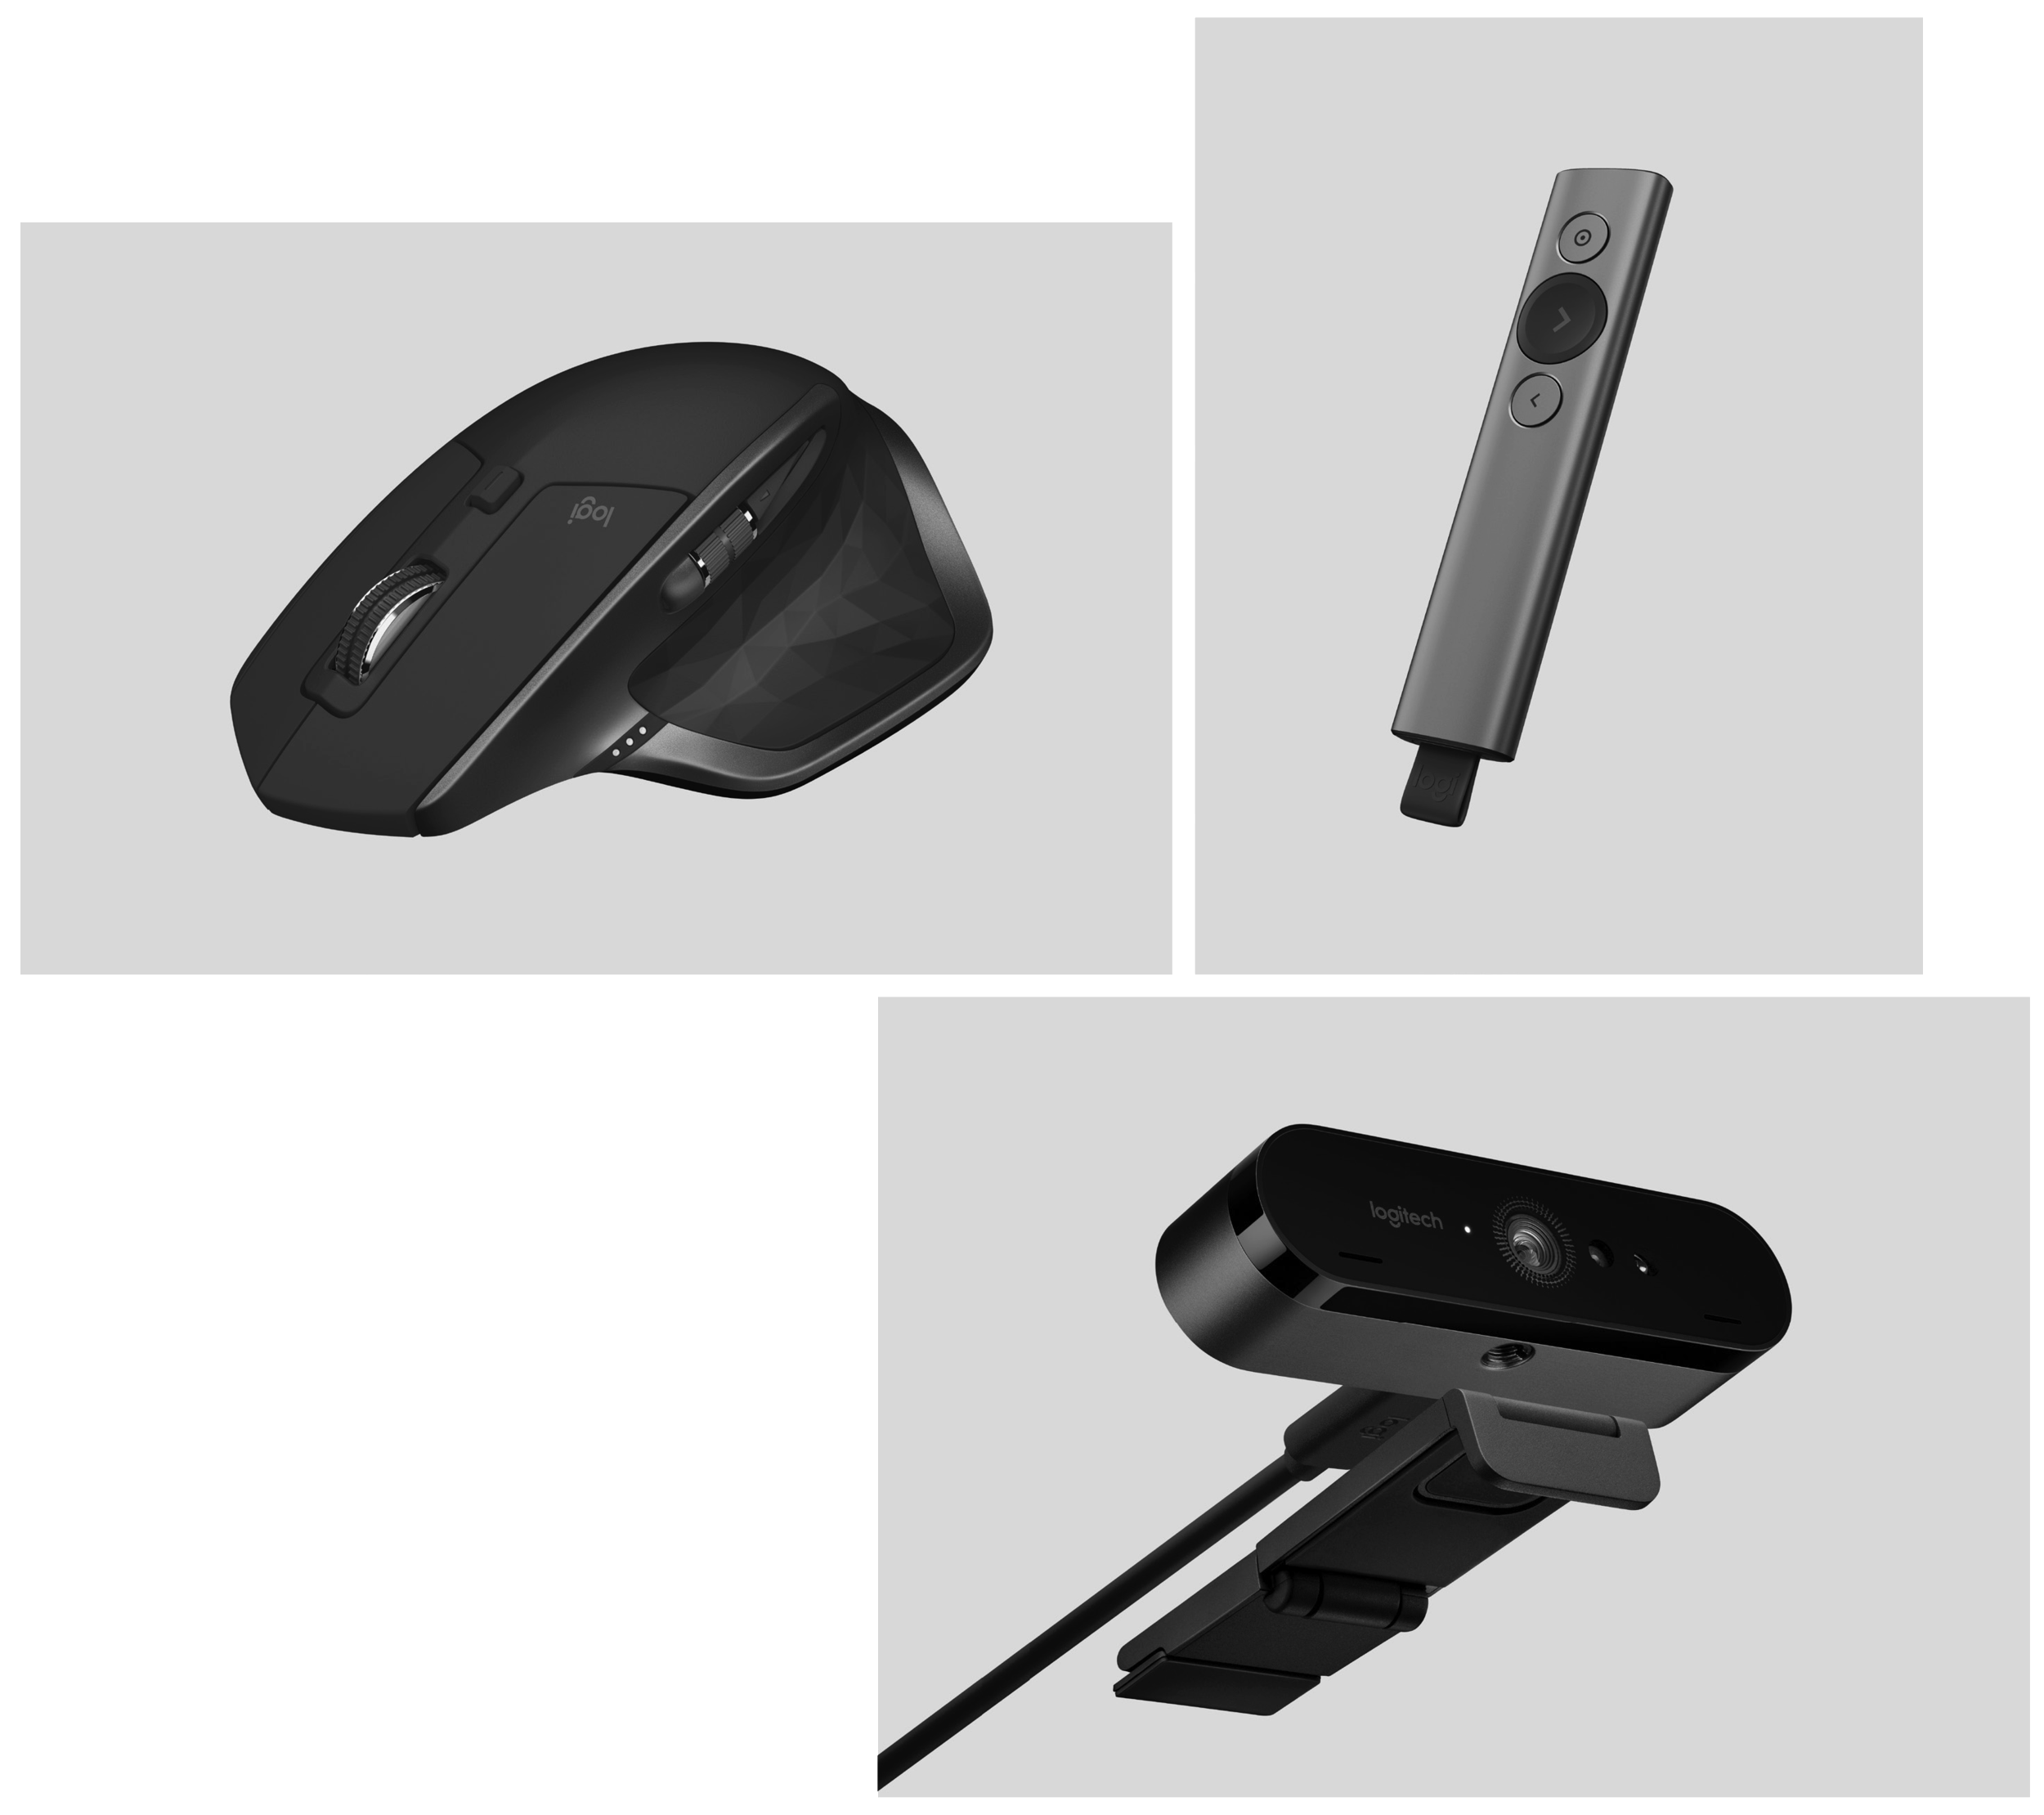 We are Family - CRAFT is designed to be part of the greater Premium Family of Logitech Creativity and Productivity products, emphasizing a precise elegance and high quality.